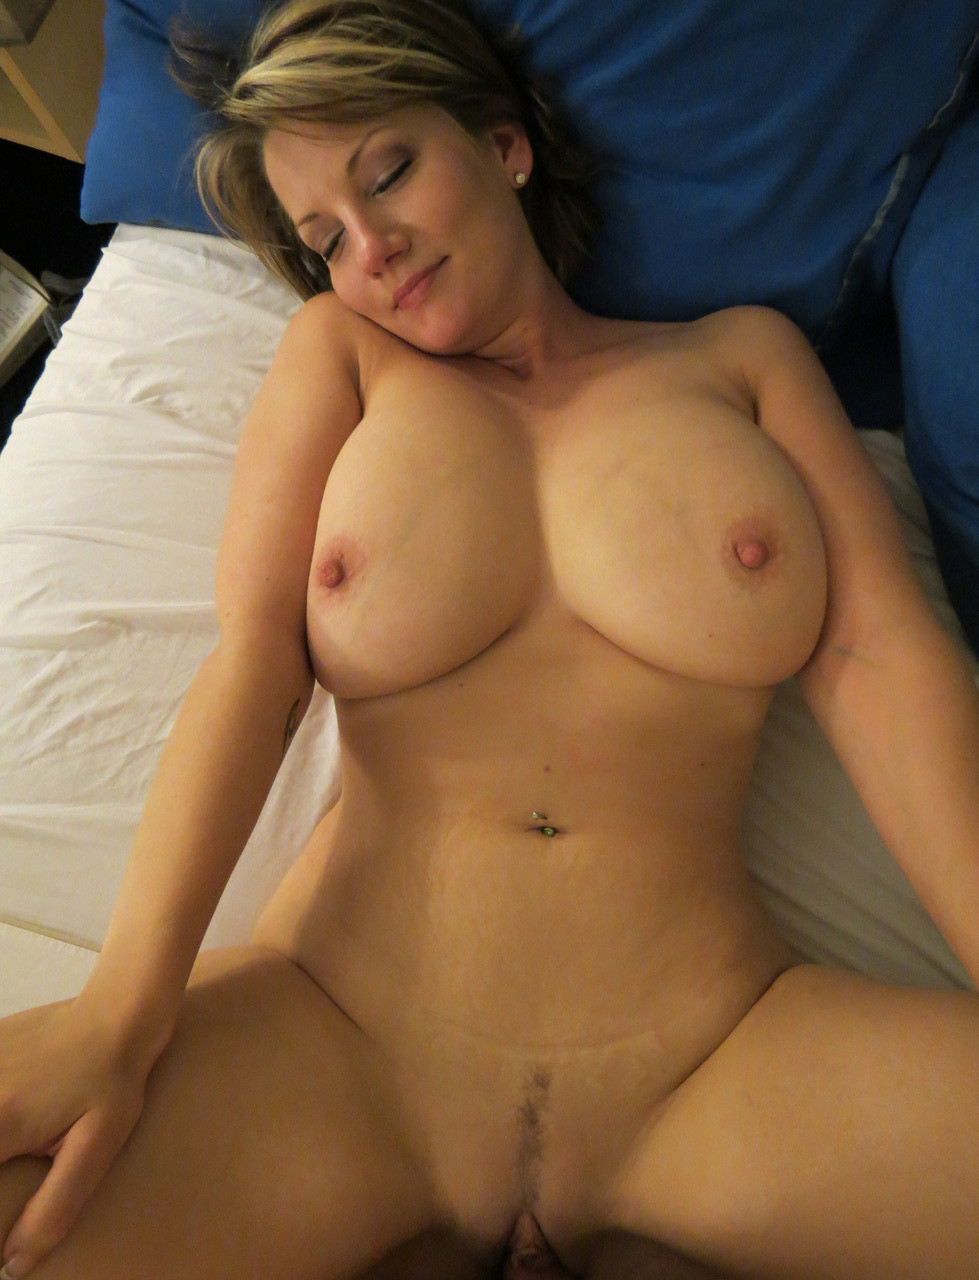 Busty MILF wife having hot sex at home